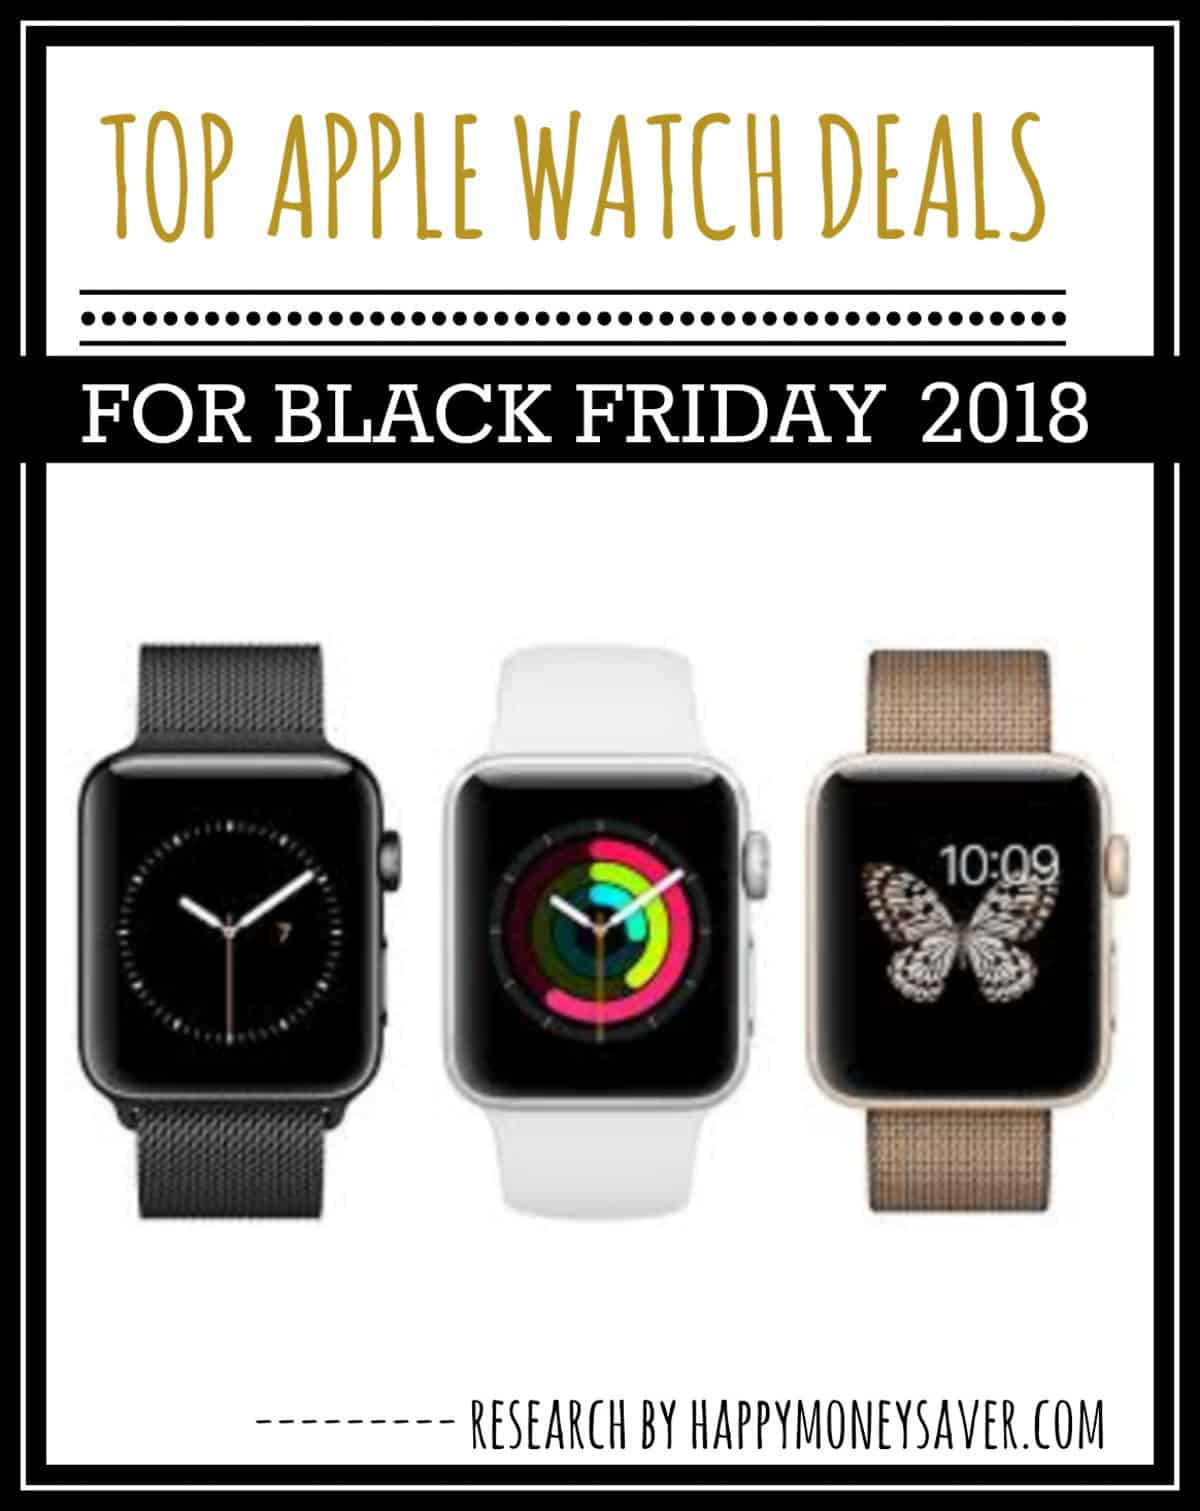 HUGE roundup of all the apple watch Black Friday deals for 2018! Research is all done for you! You're gonna love this if you love saving money!